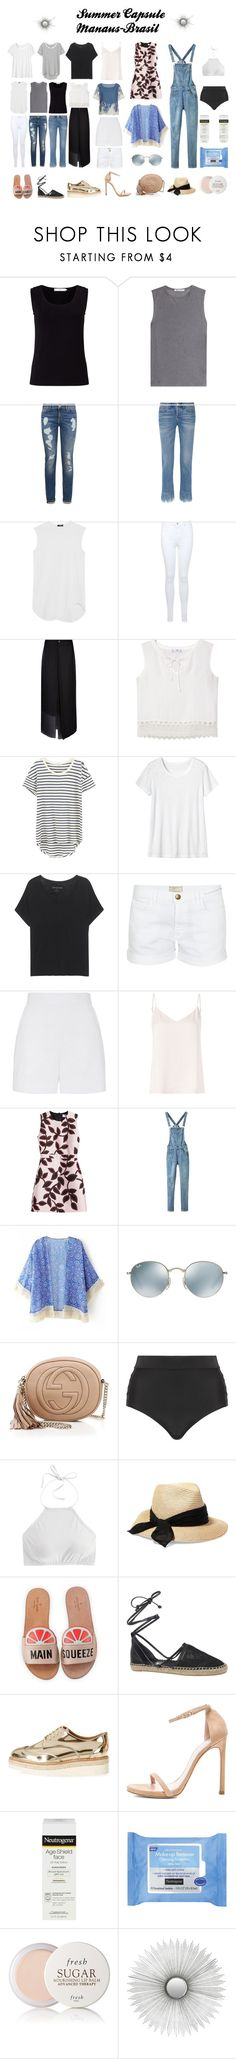 """my wish list for summer"" by jasmimestefany ❤ liked on Polyvore featuring John Lewis, T By Alexander Wang, Tommy Hilfiger, 3x1, Bassike, Miss Selfridge, MANGO, Splendid, Toast and True Religion"